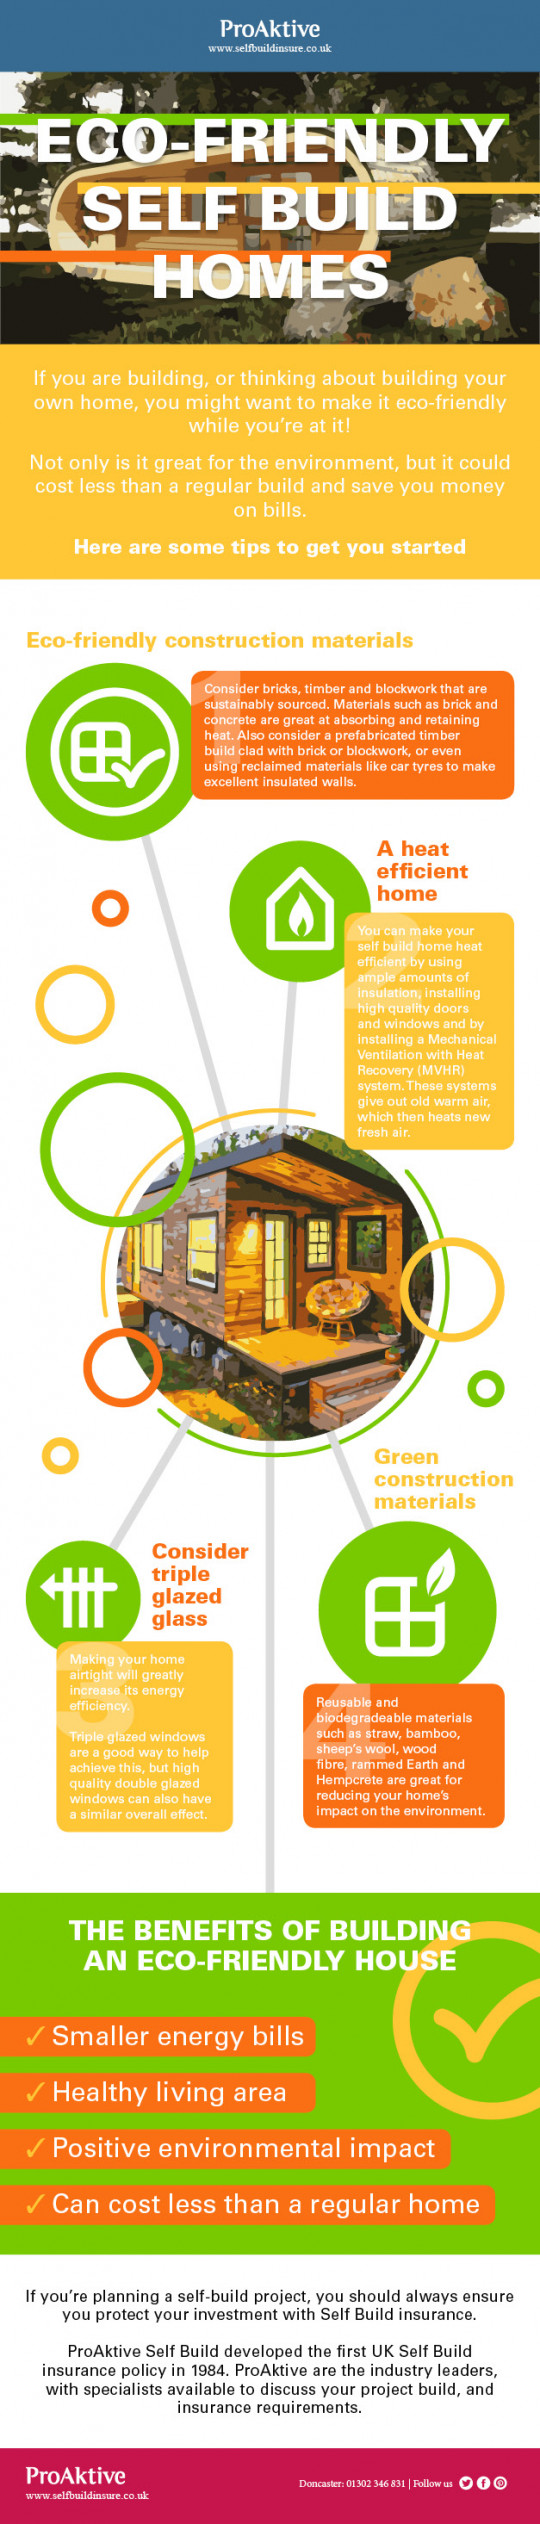 Eco-friendly Self Build Homes